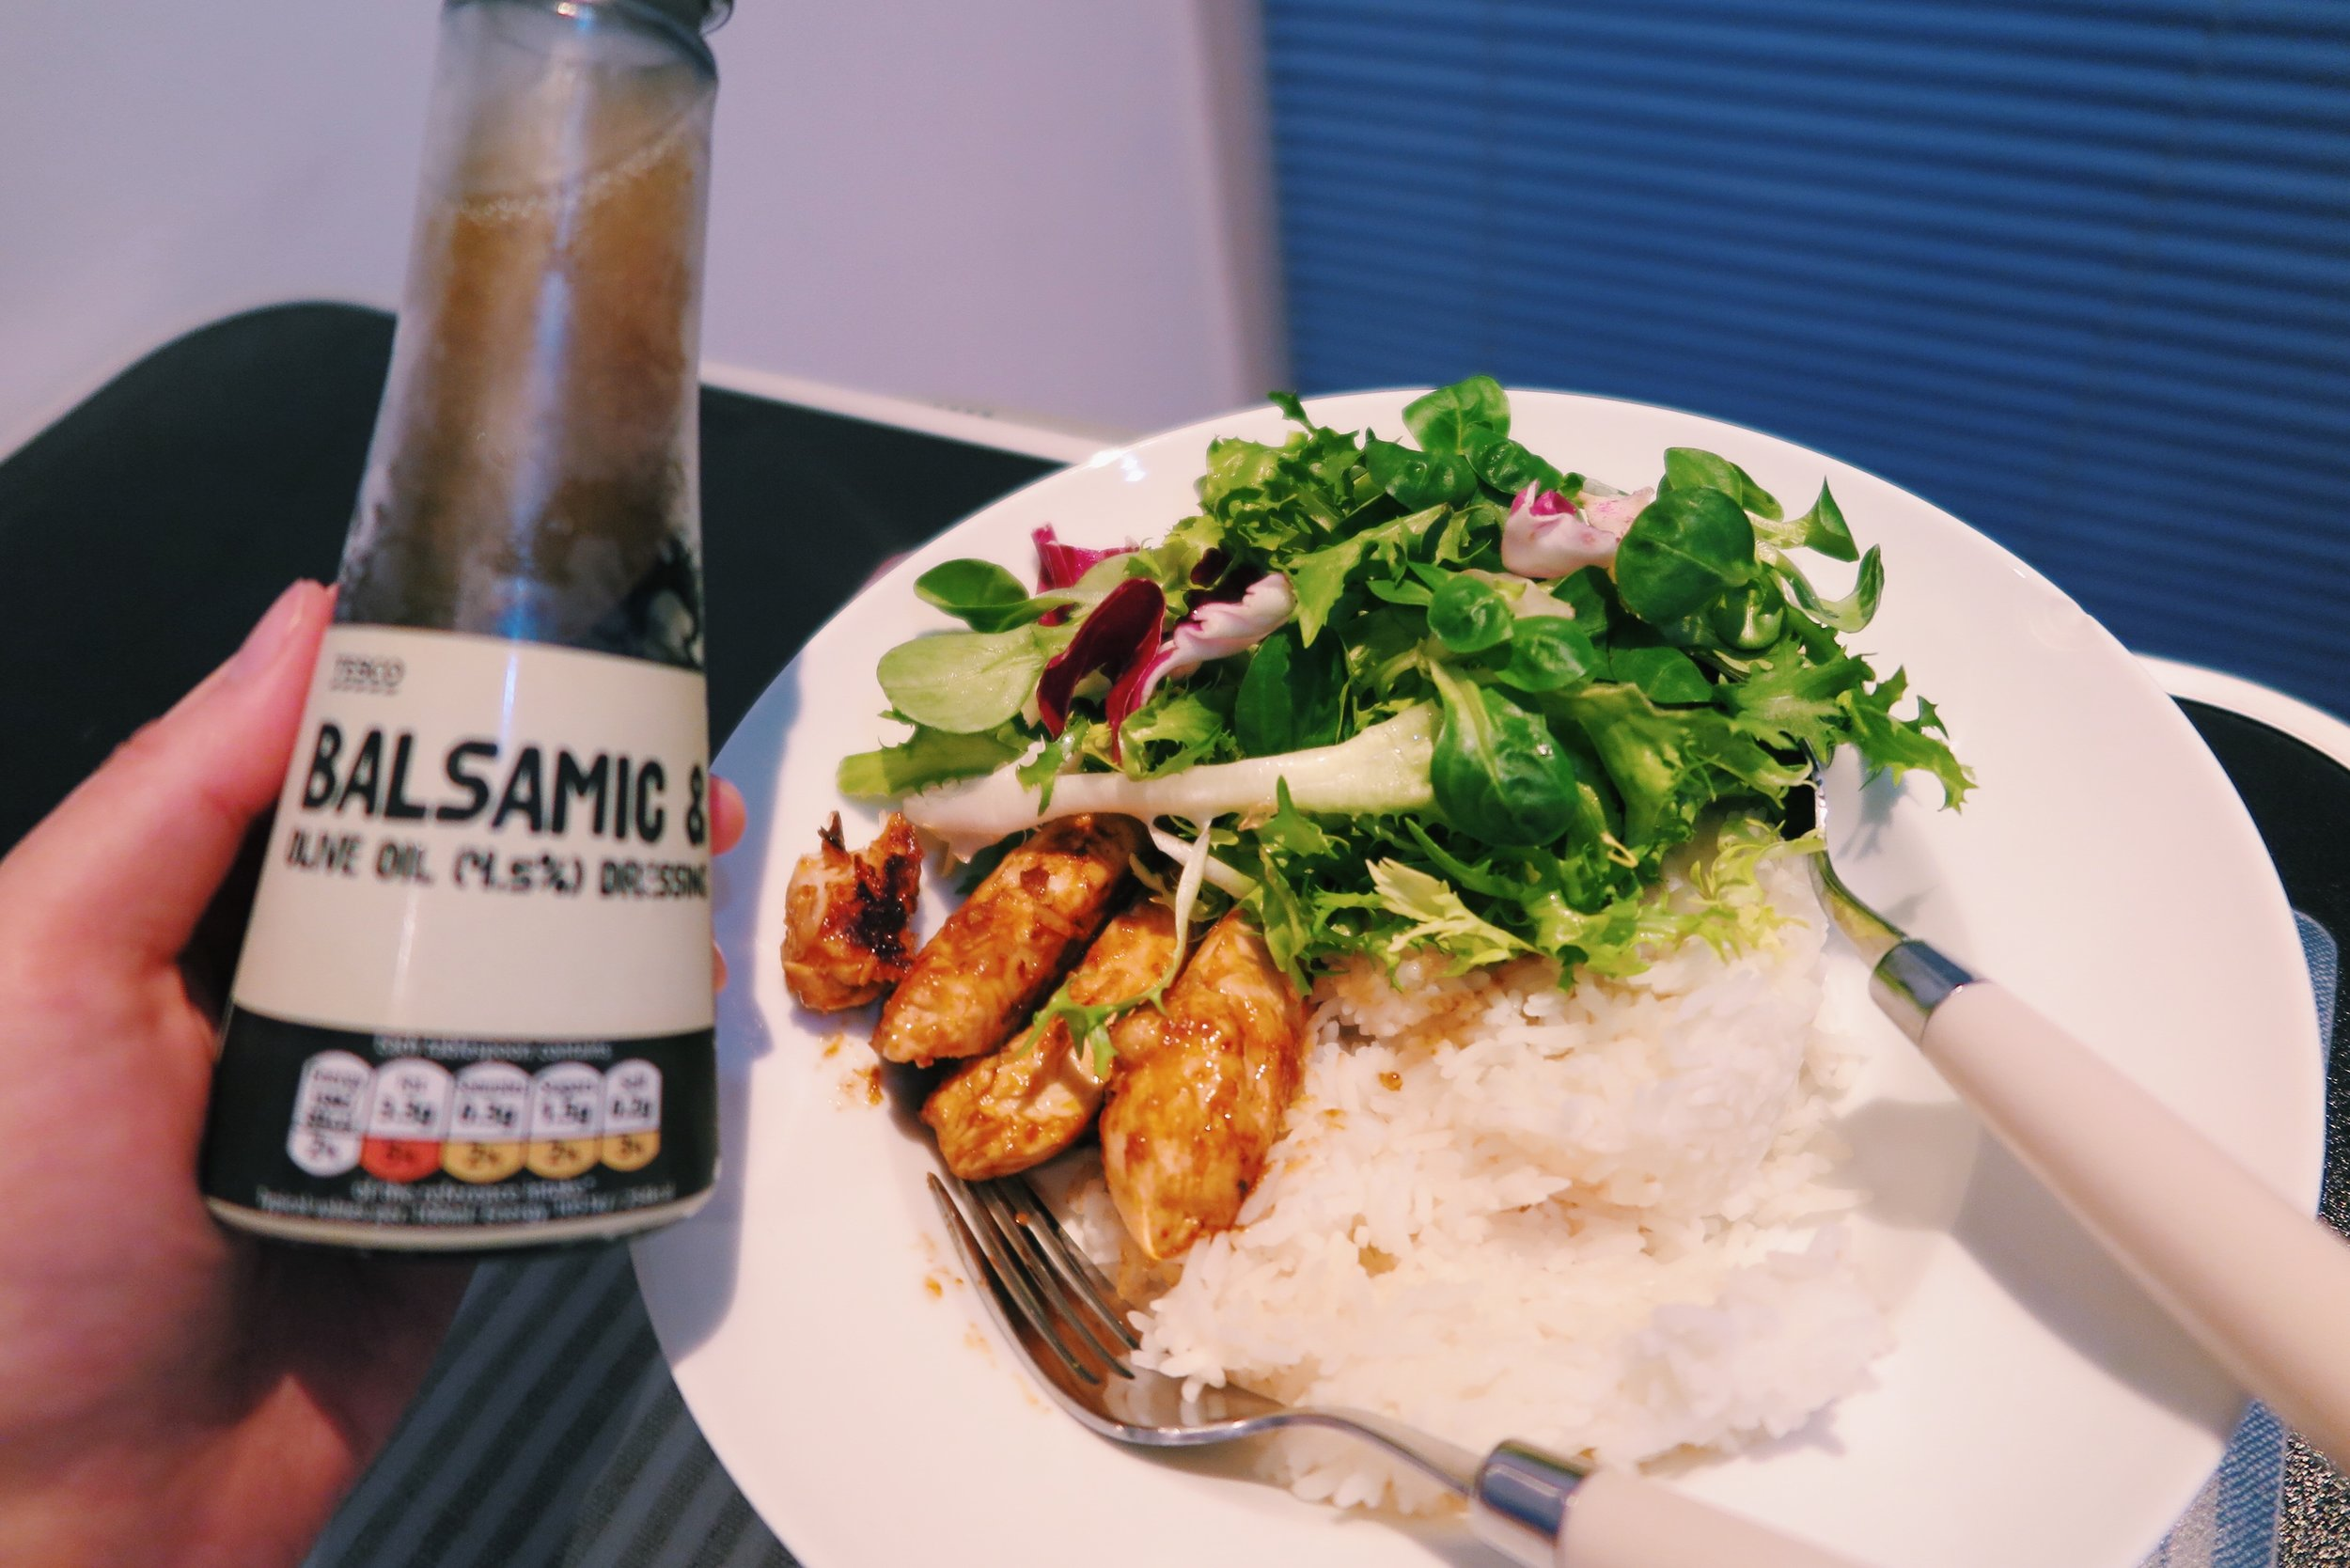 1.  Garlic & chipotle chicken + rice + salad (with balsamic & olive oil dressing)